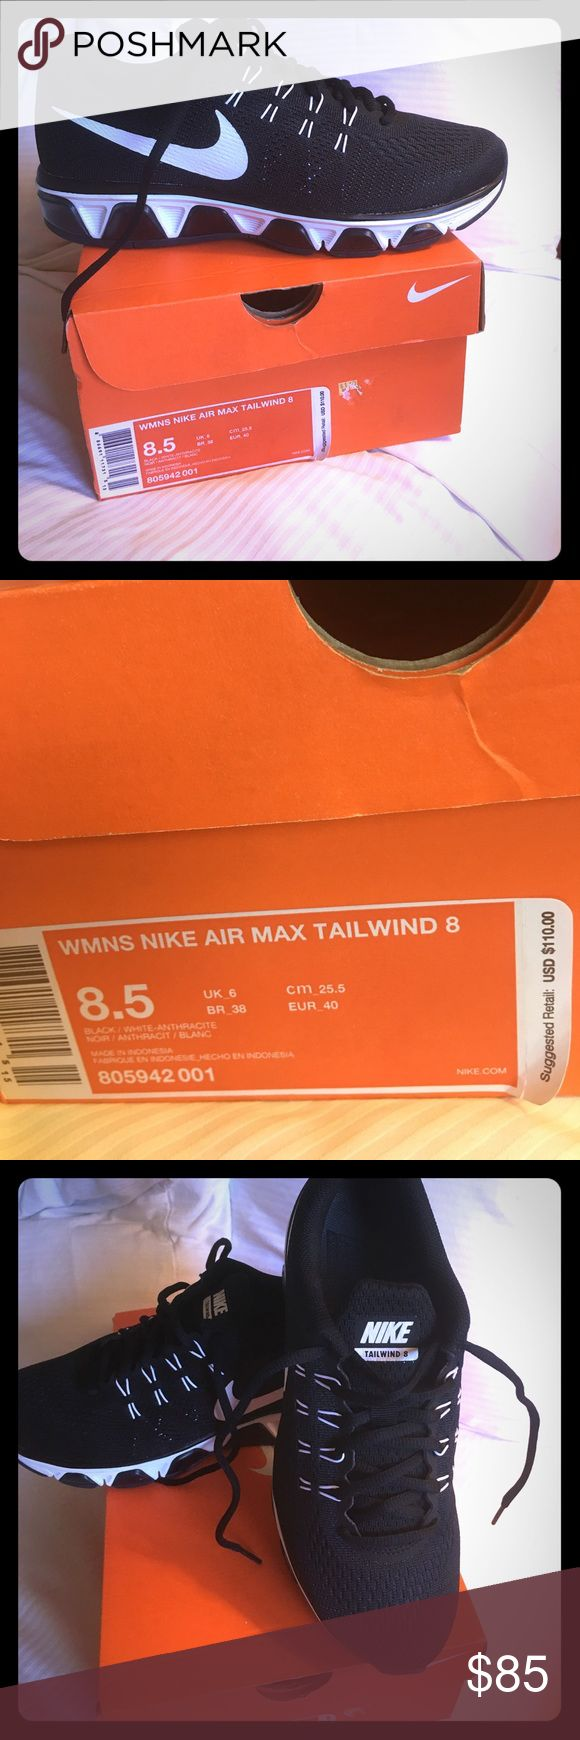 Nike Air Max Tailwind 8 Nike Air Max Tailwind size 8.5 New in Box. Nike Shoes Sneakers